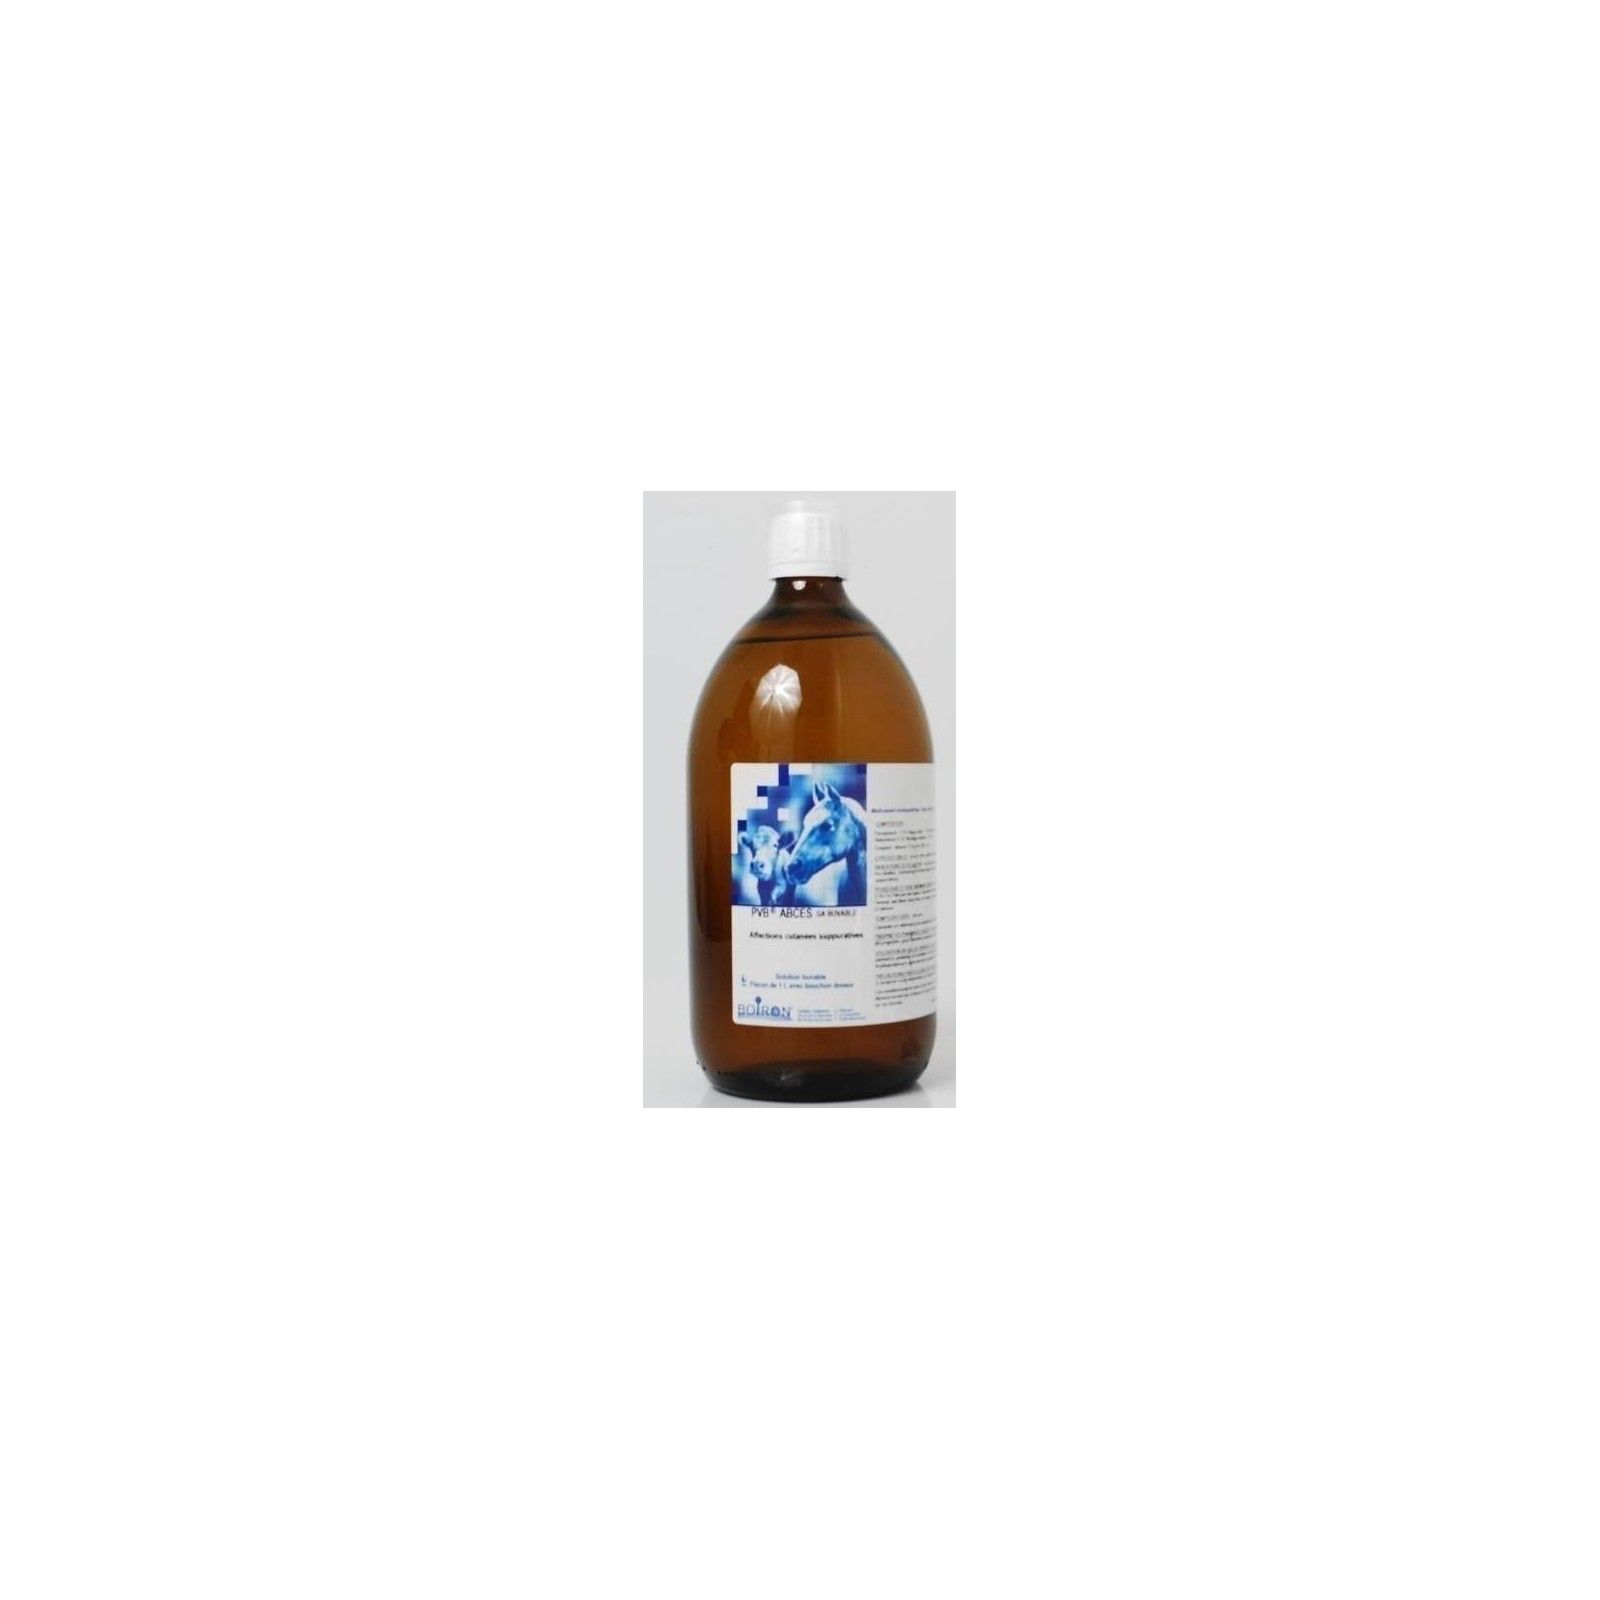 Boiron Dilutions 1L Complexe for CA186.71